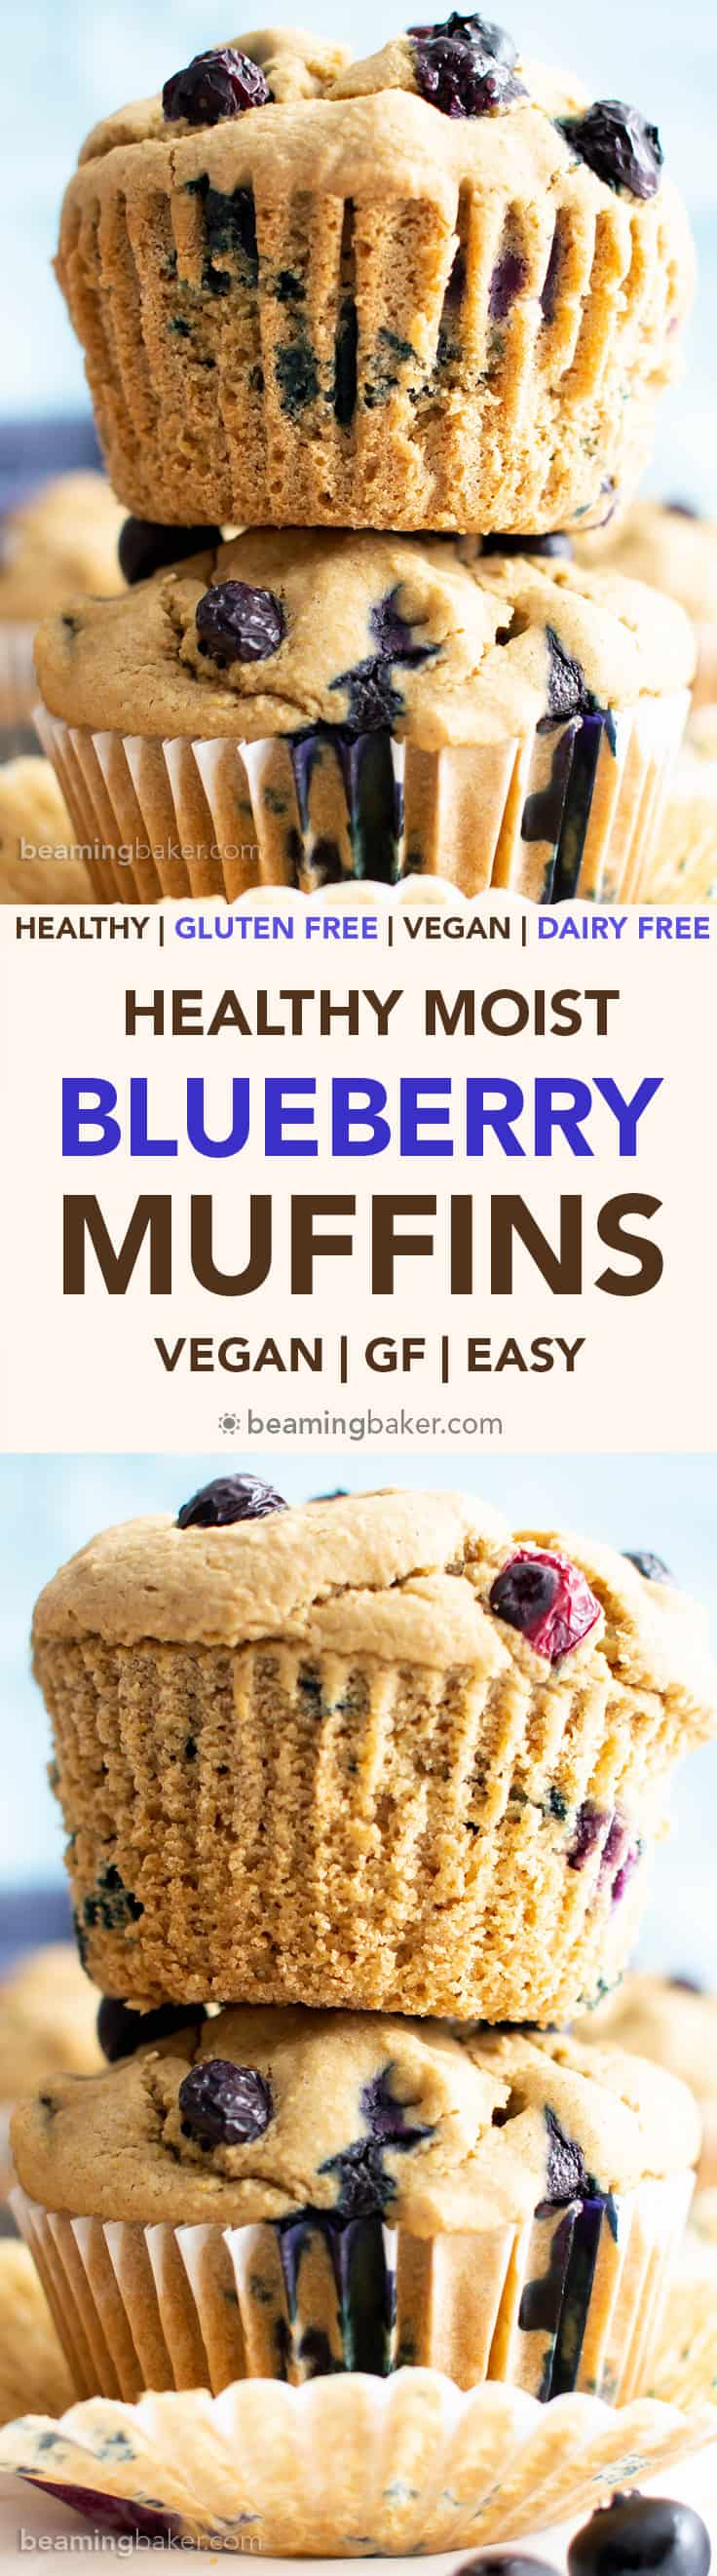 Healthy Moist Blueberry Muffins Recipe (V, GF): this gluten free vegan blueberry muffins recipe is quick 'n healthy! It's the best healthy moist blueberry muffins recipe from scratch! #Vegan #GlutenFree #Muffins #Blueberry #Healthy | Recipe at BeamingBaker.com